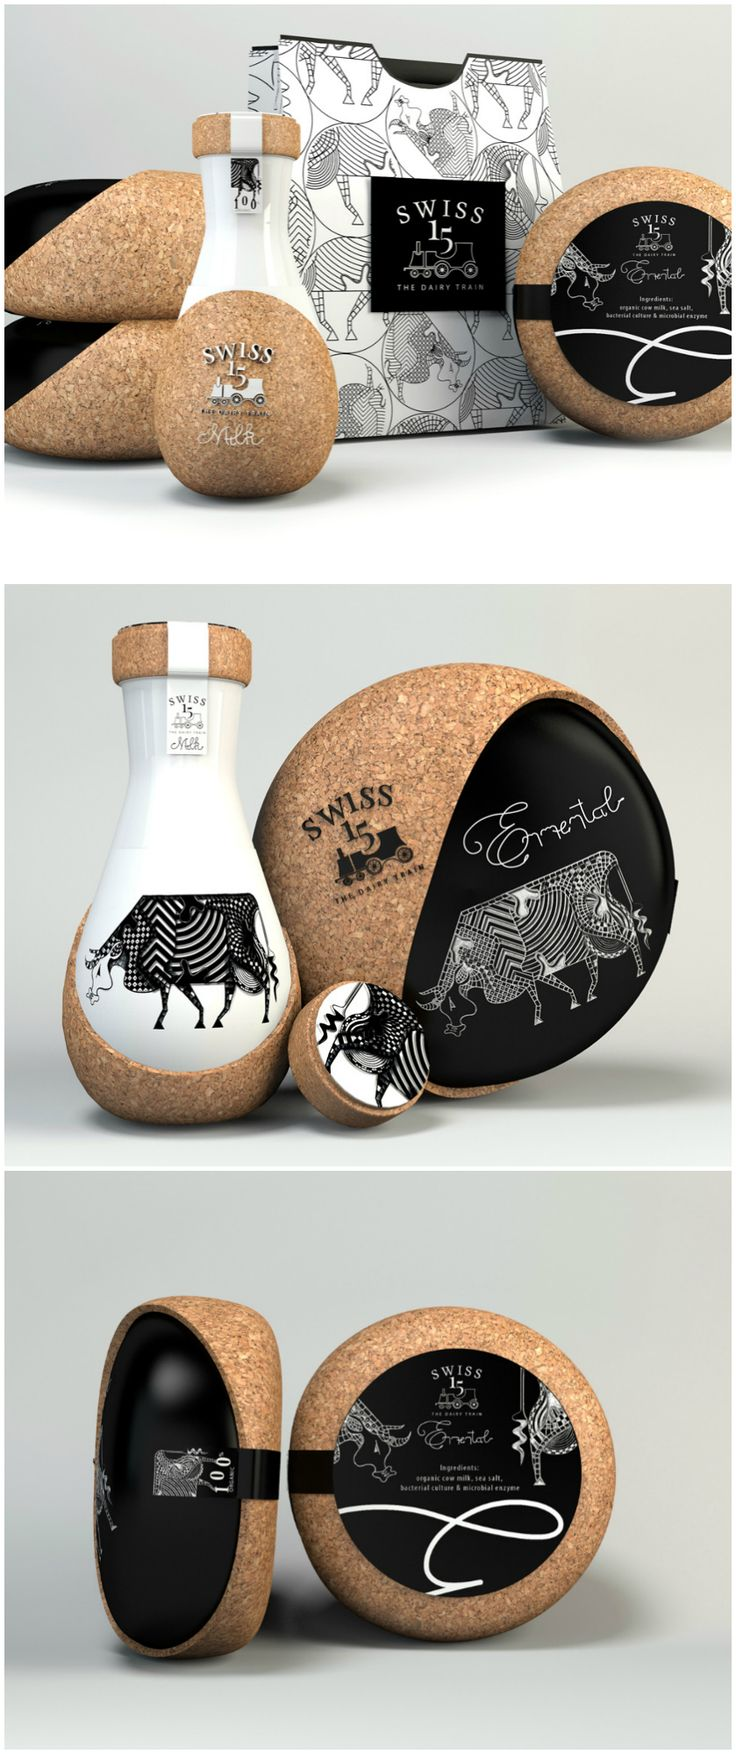 CreativeByDefinition - Swiss 15 The dairy train #packaging #design #diseño #empaques #embalagens #パッケージデザイン #emballage #bestpackagingdesign #worldpackagingdesign #worldpackagingdesignsociety